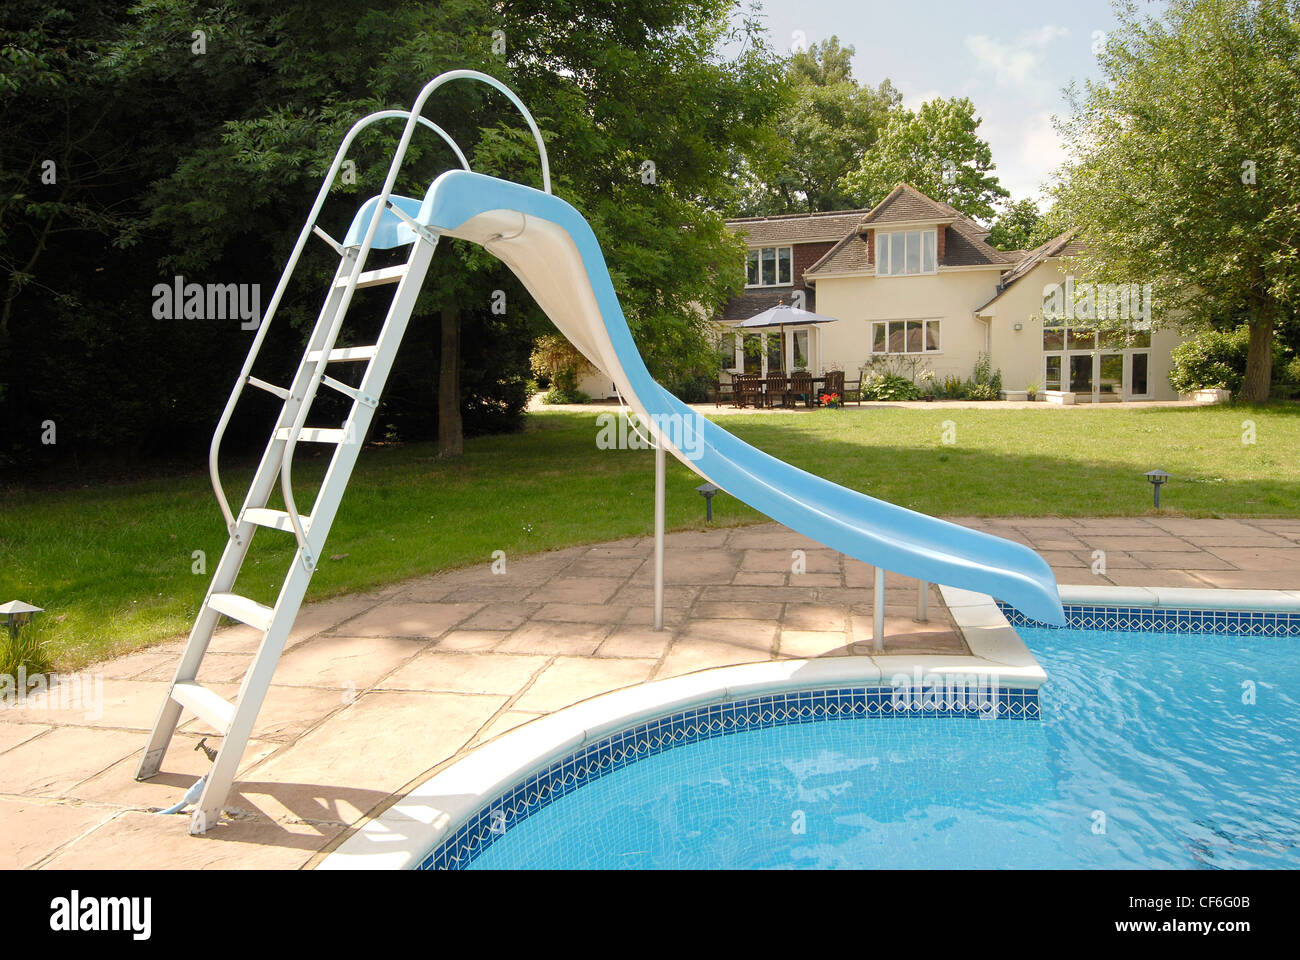 Outdoor pool with slide  An outdoor swimming pool in a garden featuring a slide, plants and ...